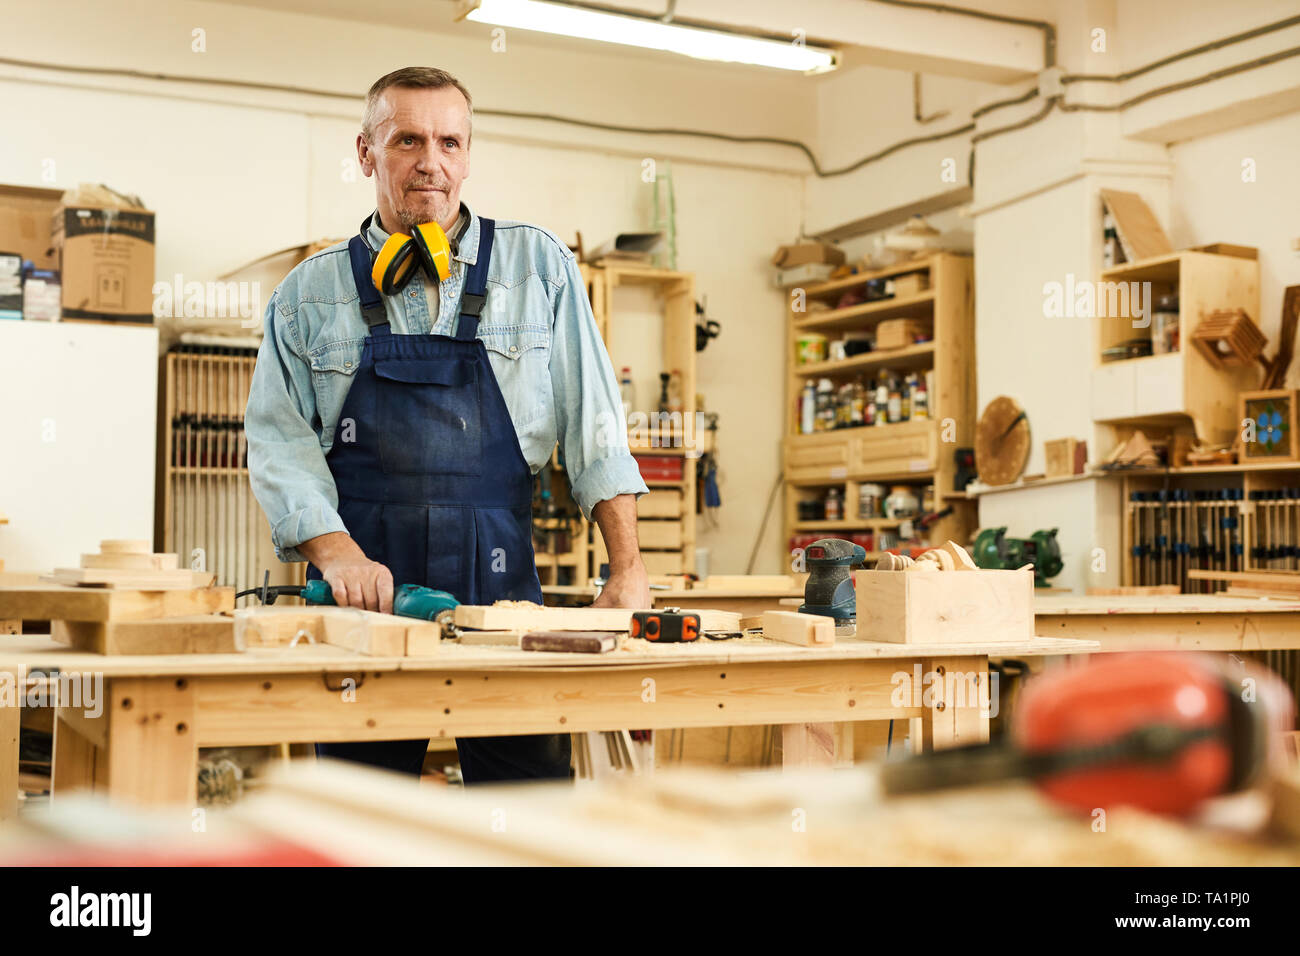 Waist up portrait of senior carpenter looking away while working in joinery, copy space - Stock Image